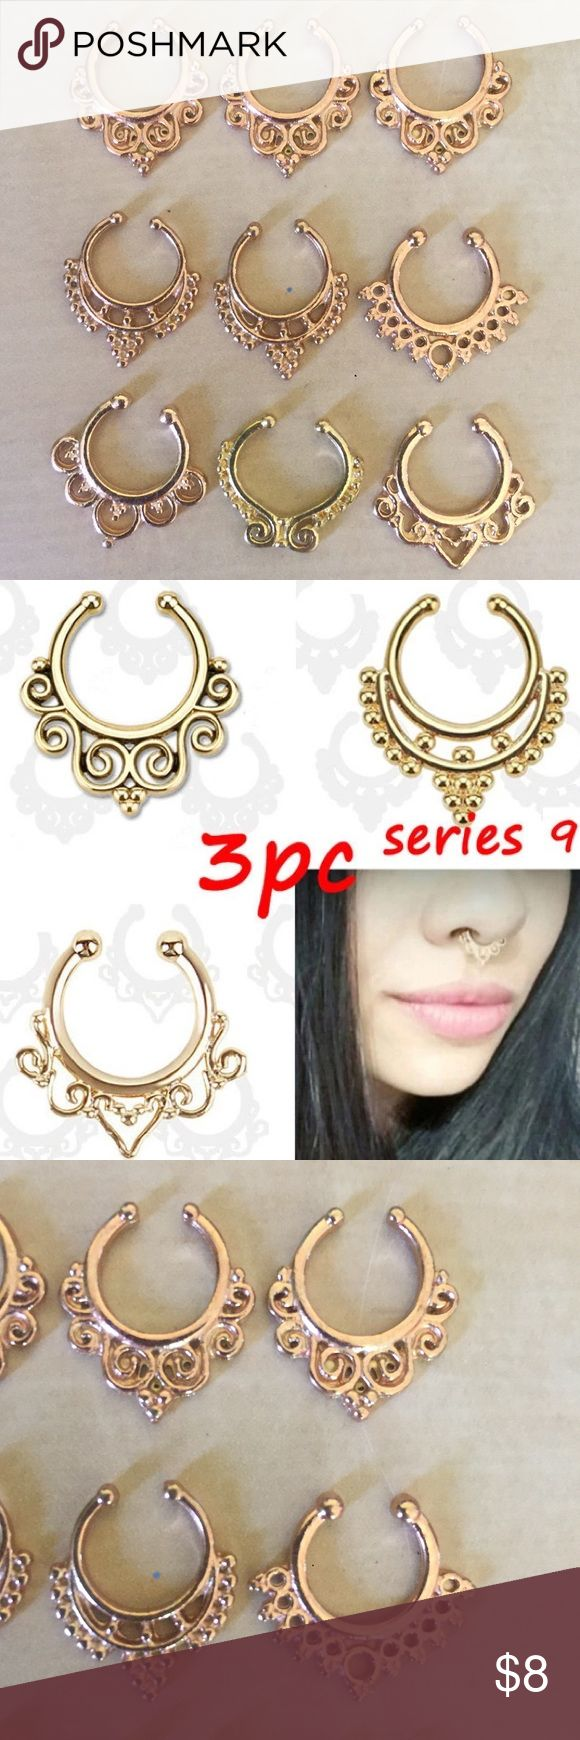 septum rings gold body piercing nose ring jewelry Set of 9 temporary septum rings ! About the size of a dime. Dark gold and a few lighter gold. Perfect for music festivals rave Coachella burning man etc. I will do $8 including shipping through ♈️enmo or ♏️ercari. tags: body clip body piercing jewelry faux nose ring belly button plugs gauges earrings pierce goth punk rave temporary edc edm nasty gal dollskill feminist iron fist Wicca Wiccan gothic hot topic boho bohemian raveready iheartraves…